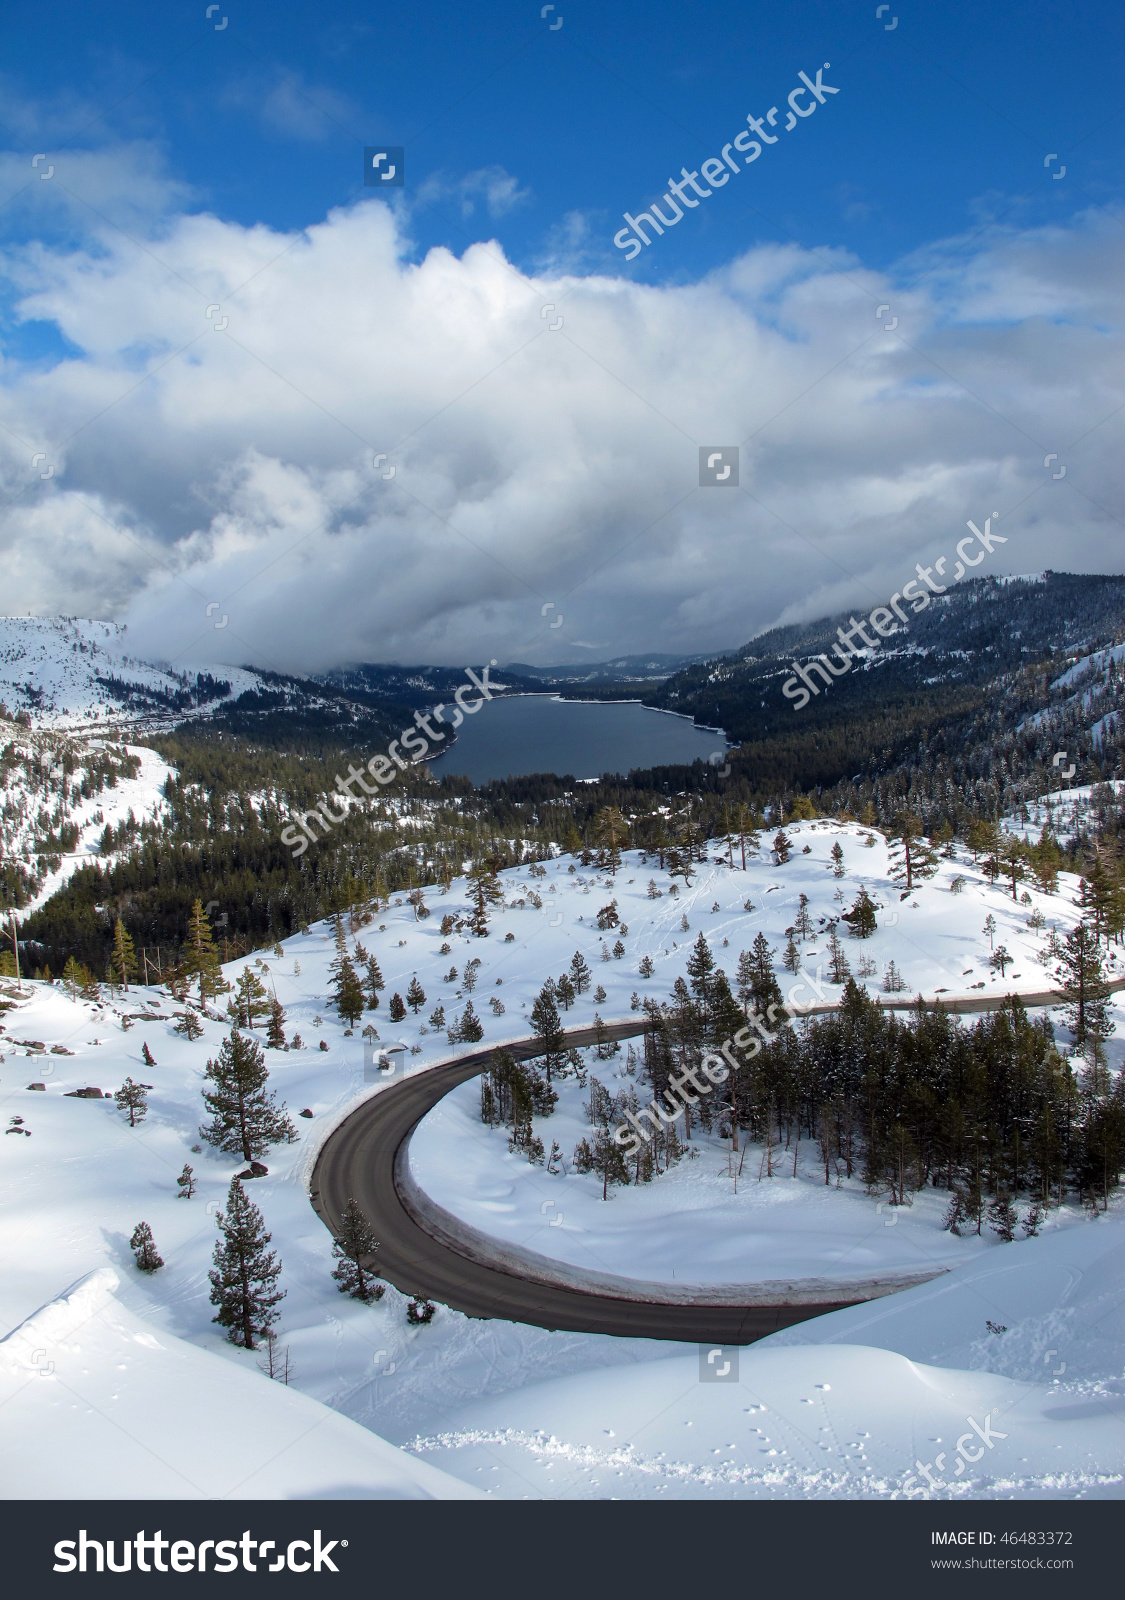 Donner Lake Snow Donner Summit Near Stock Photo 46483372.